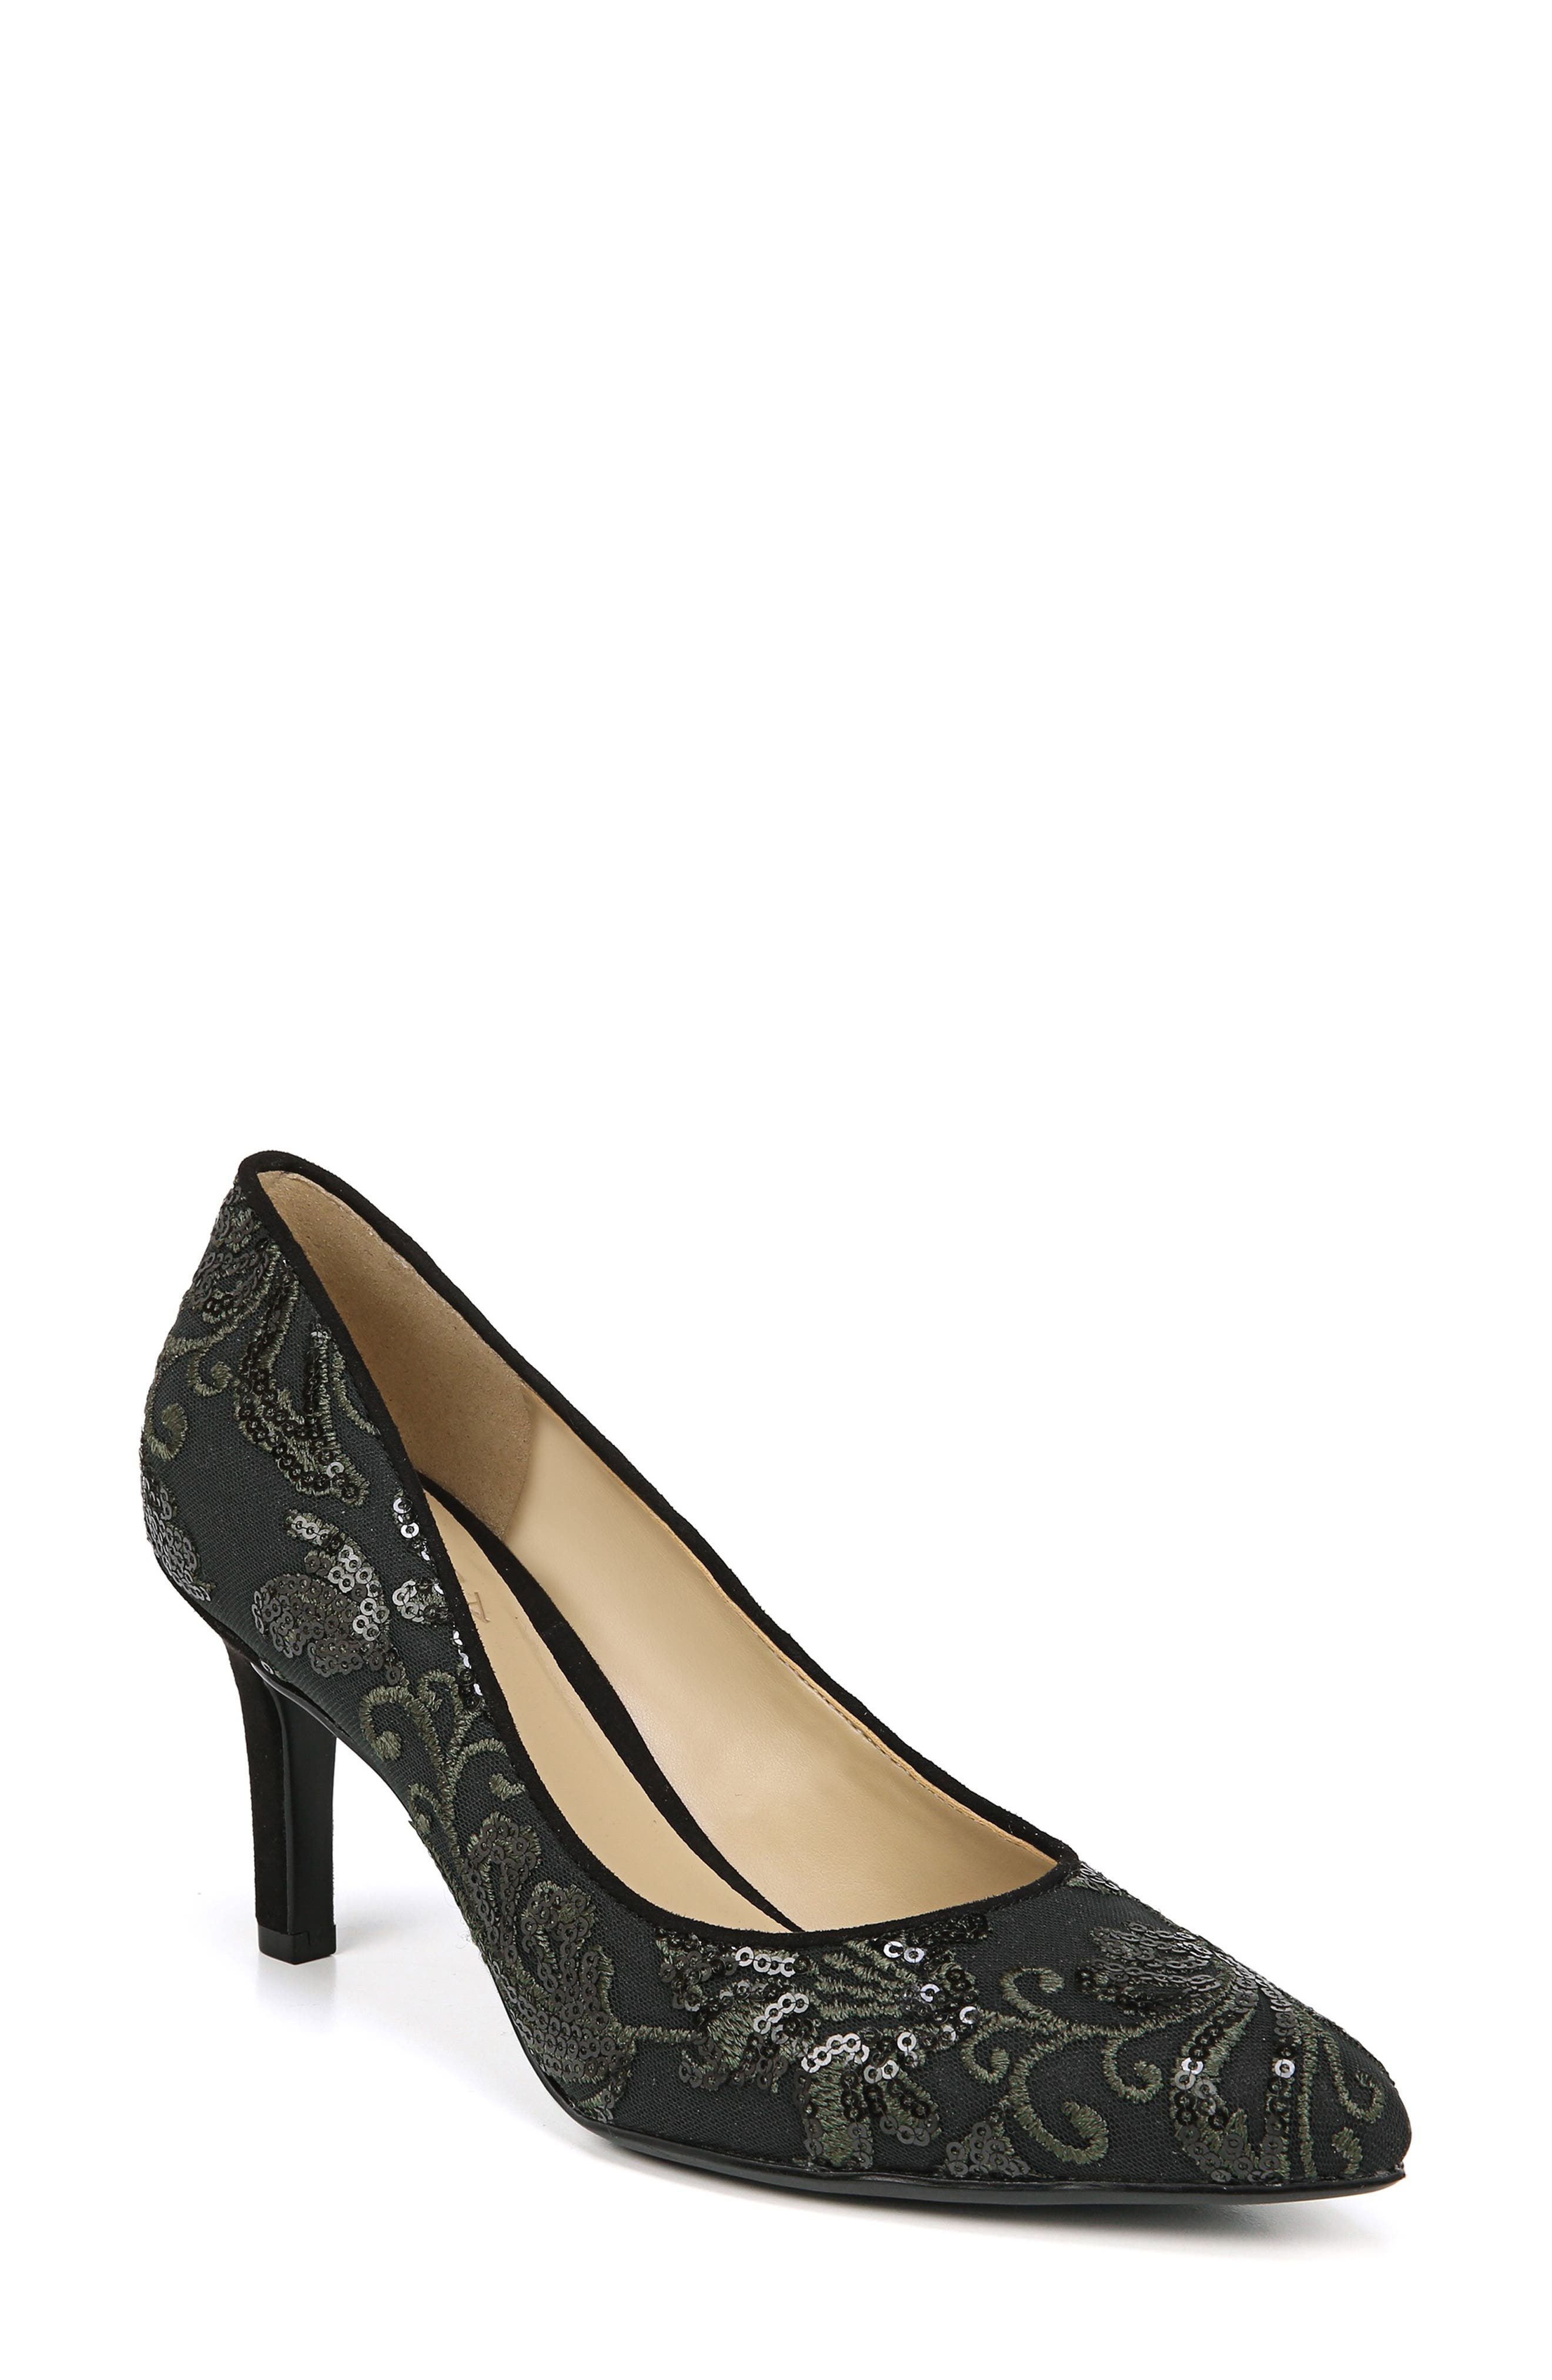 NATURALIZER Natalie Pointy Toe Pump, Main, color, FERN GREEN EMBROIDERED